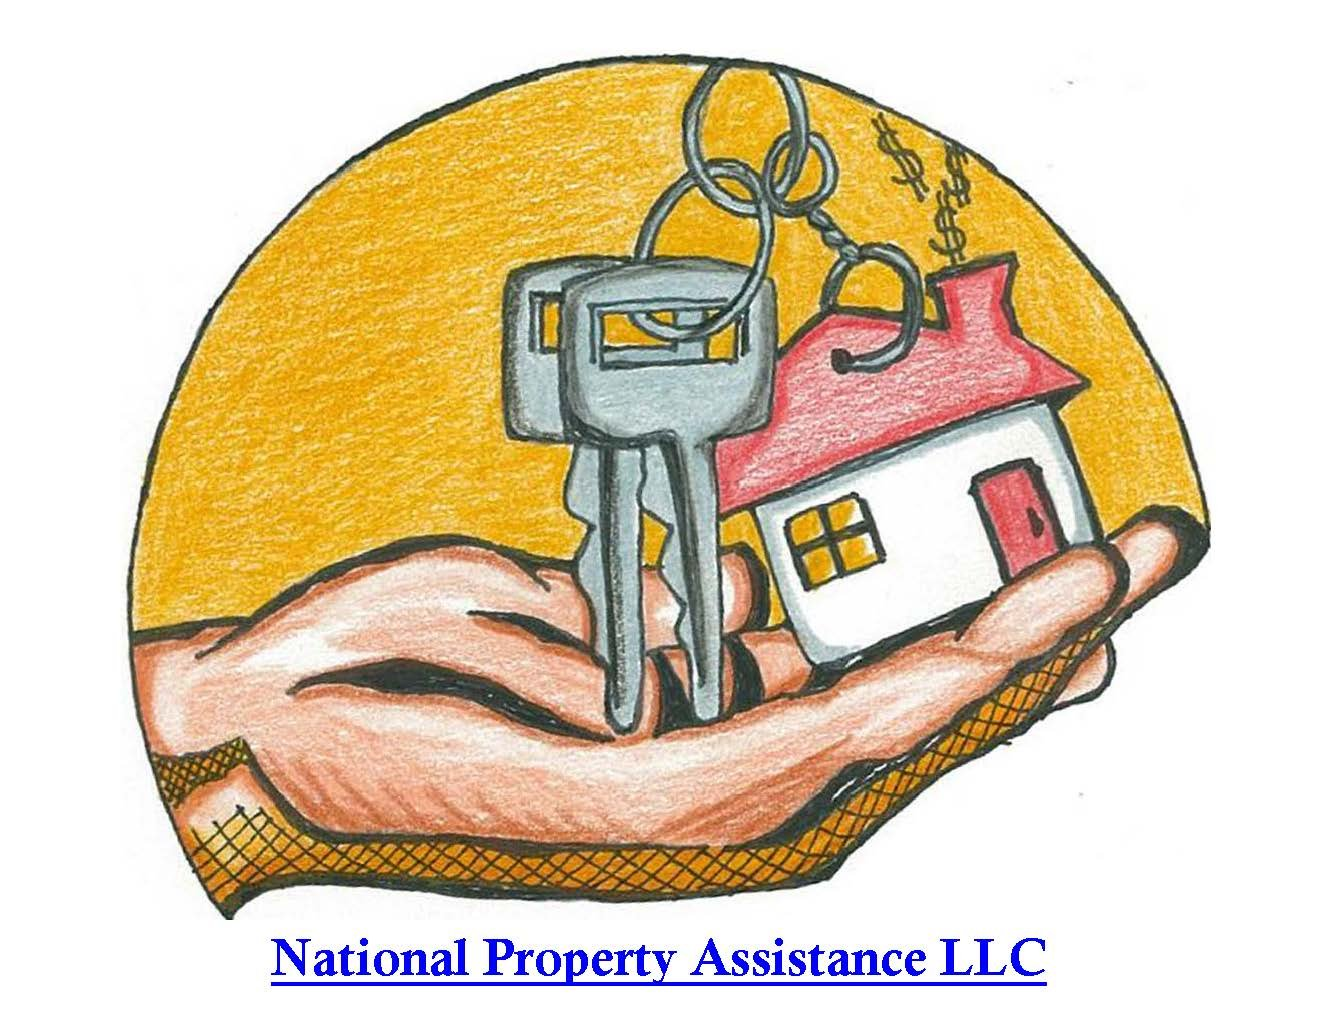 National Property Assistance LLC logo